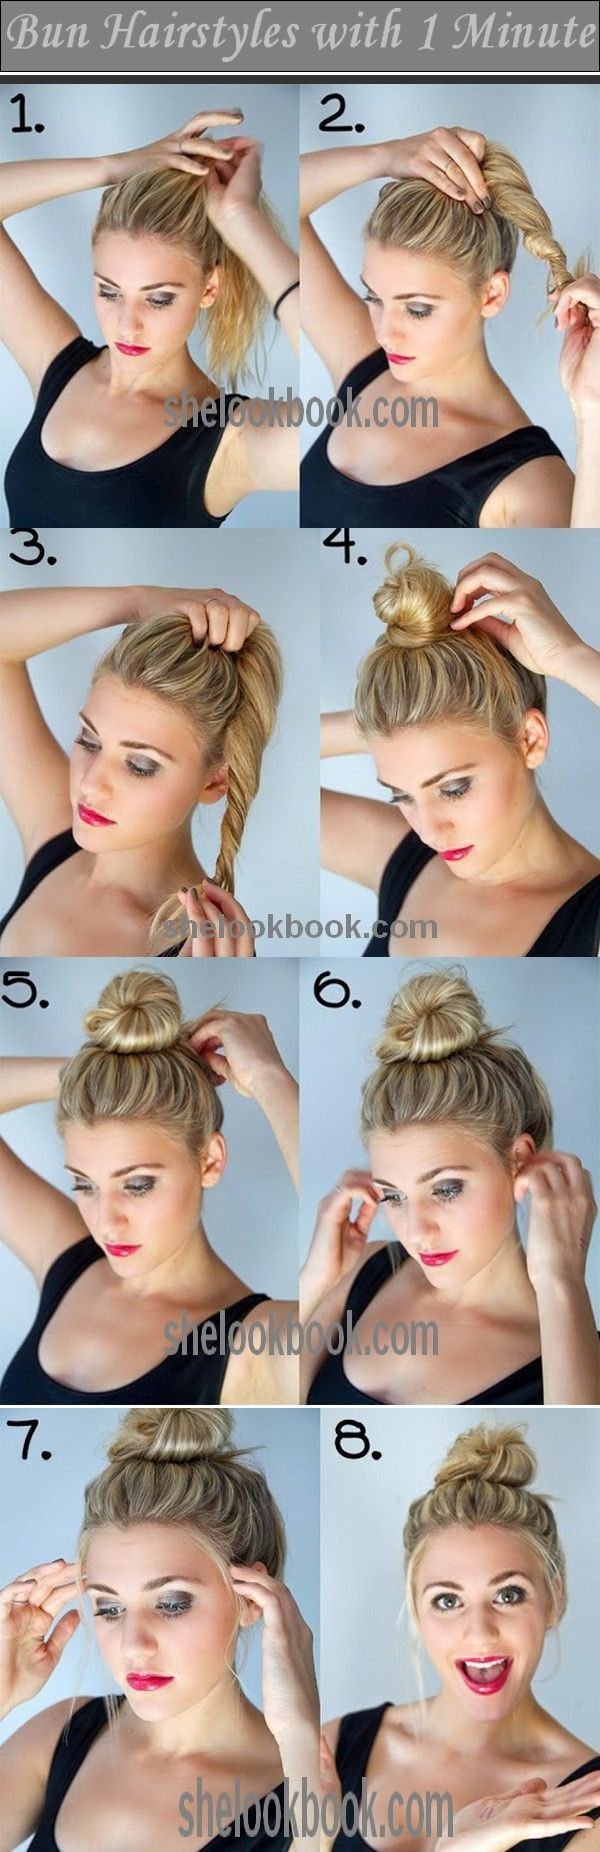 hairstyles that are way better with dirty hair bun hairstyle